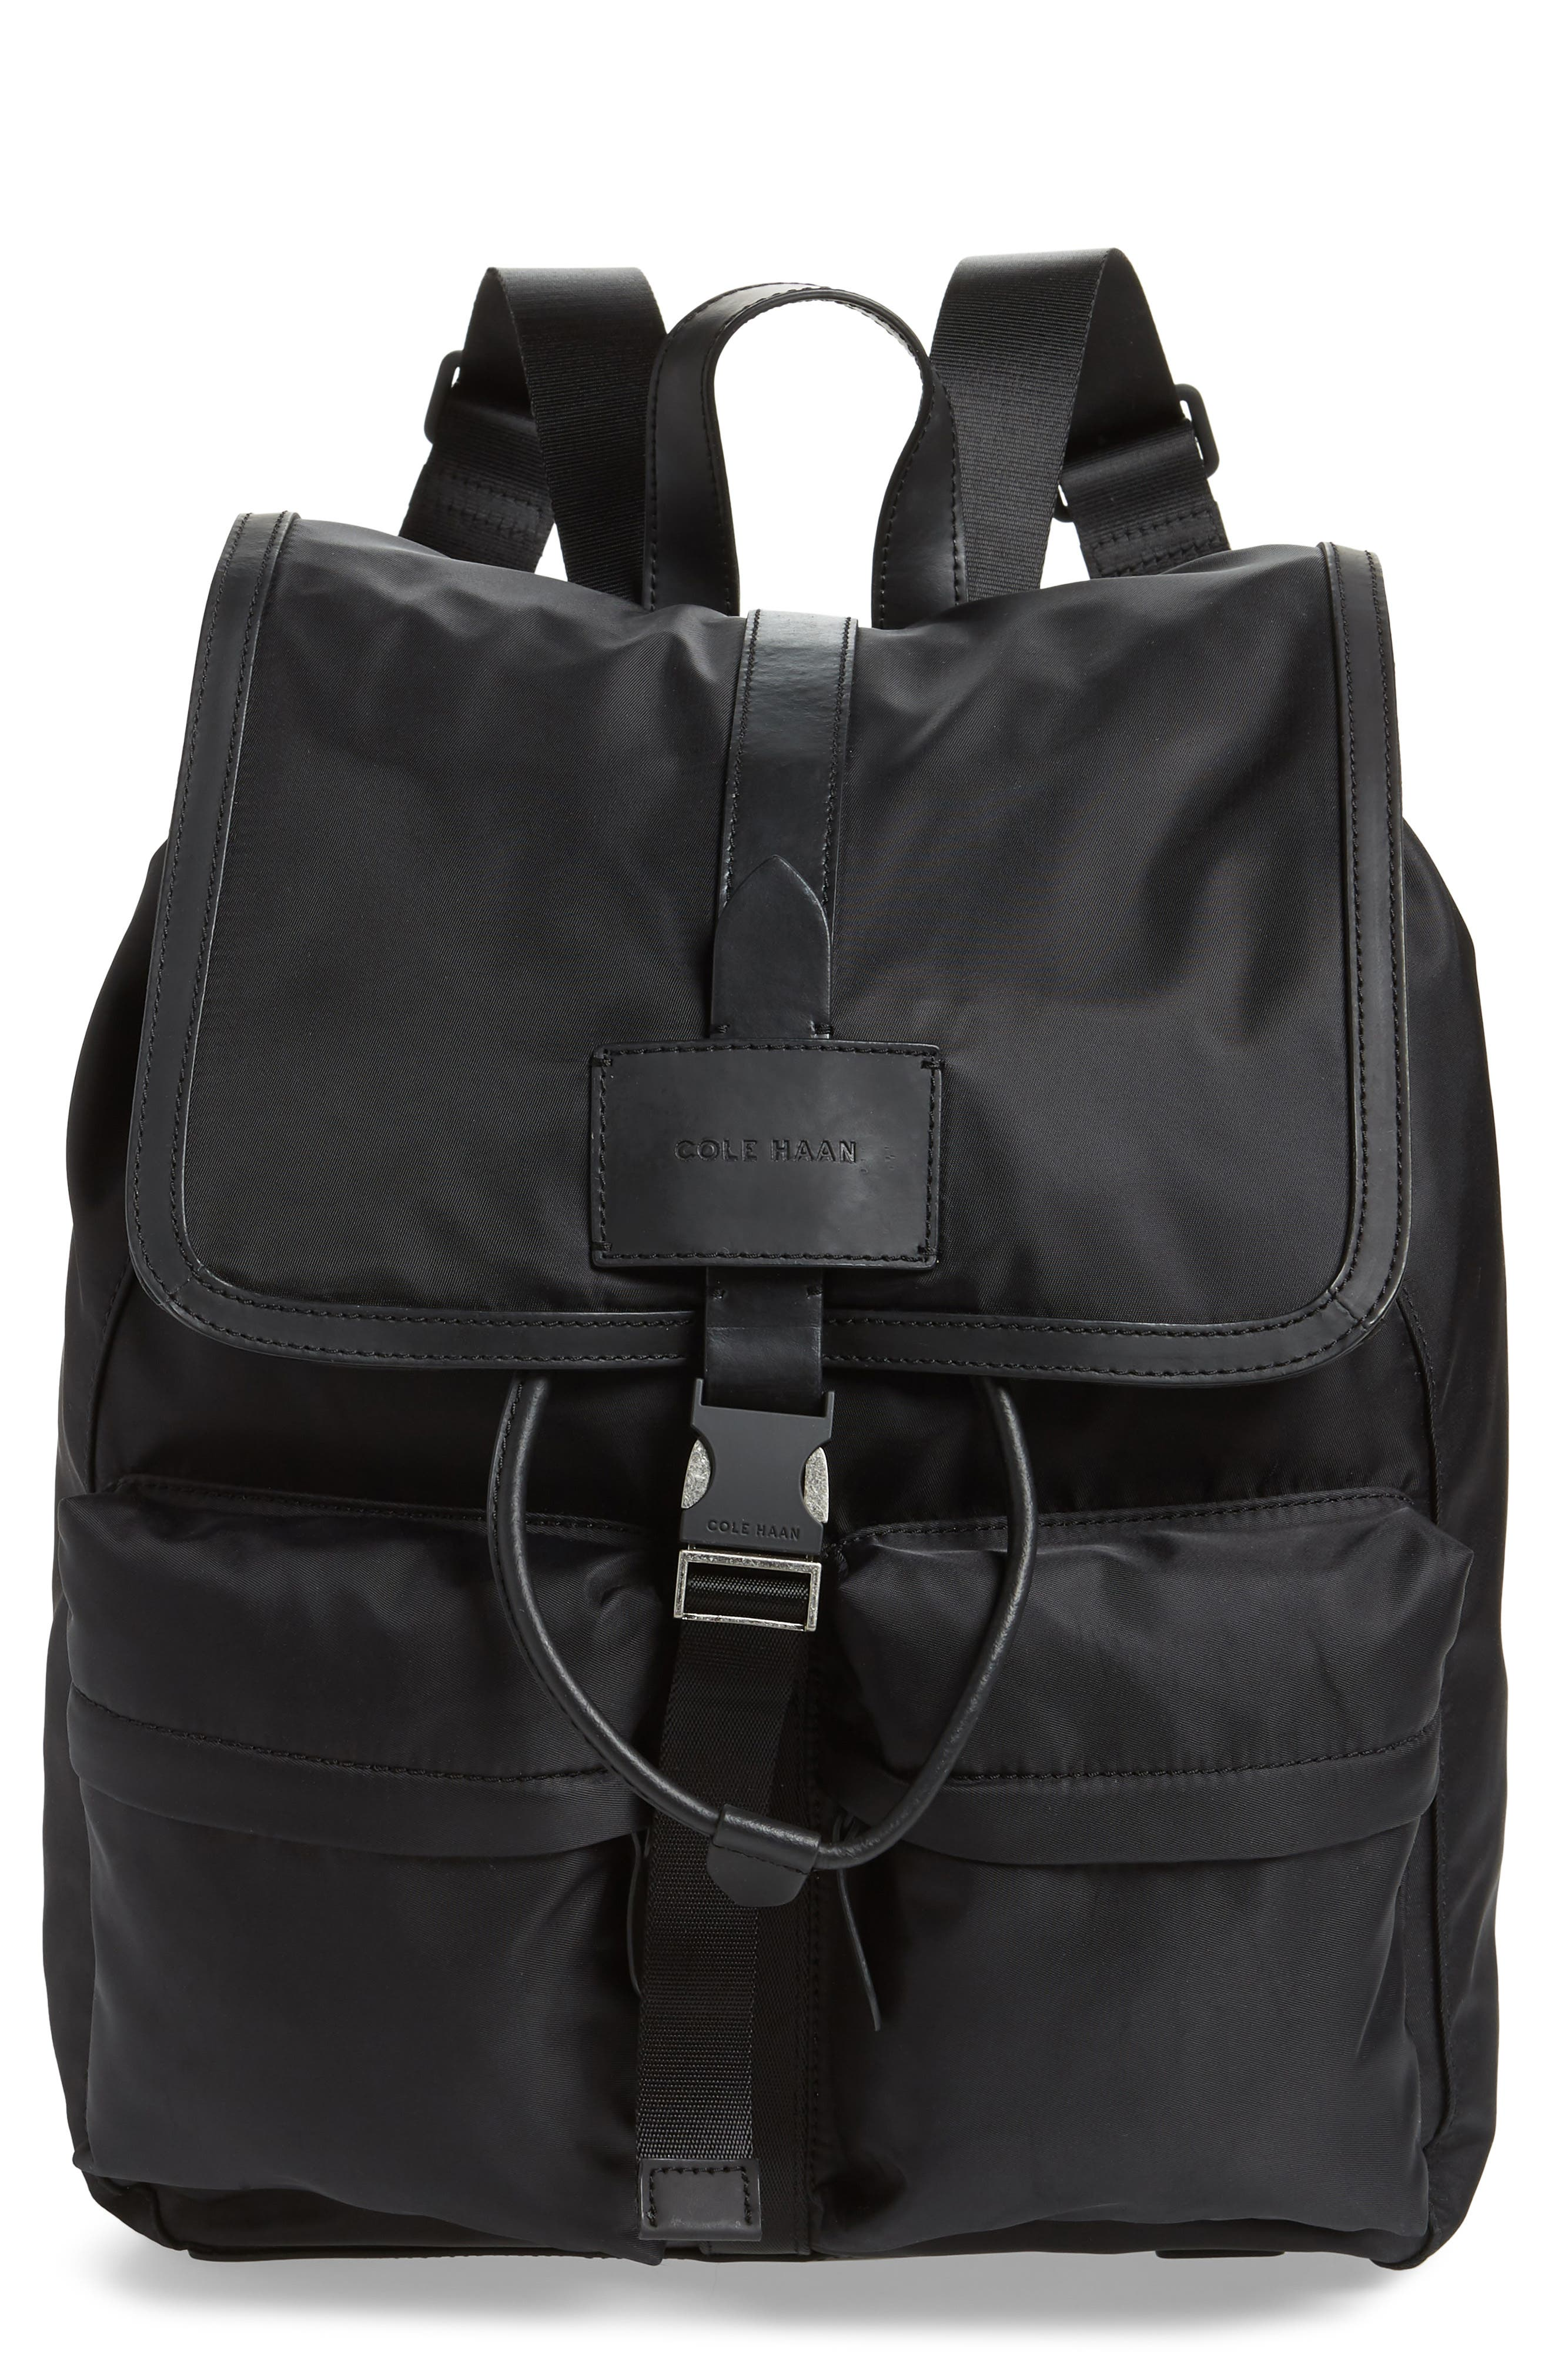 COLE HAAN, ZeroGrand Backpack, Main thumbnail 1, color, BLACK